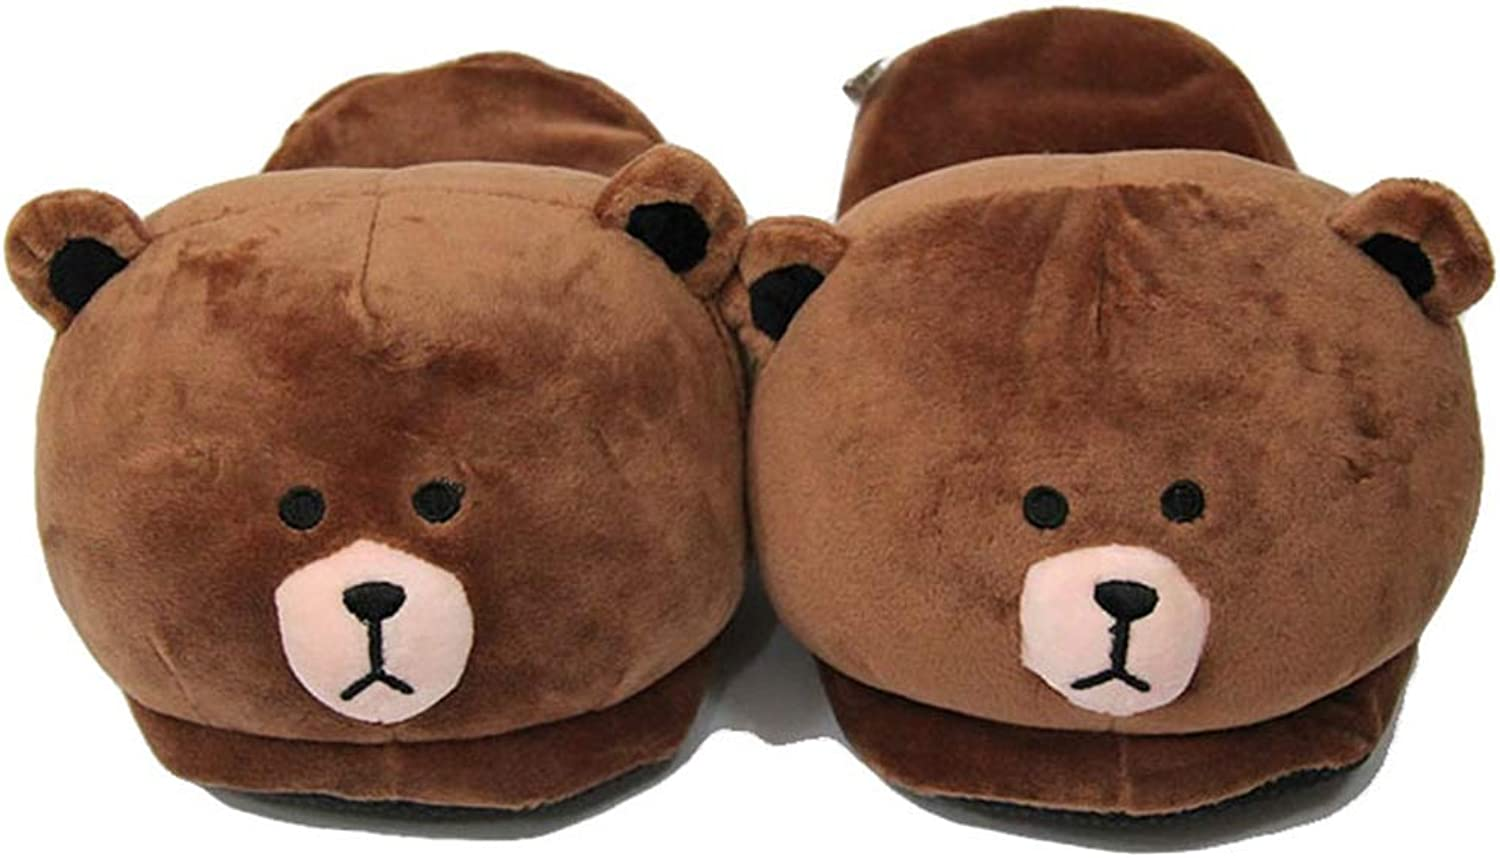 York Zhu Cute Home Slippers - Teddy Bear Fur Lined Indoor House Slipper for Girls